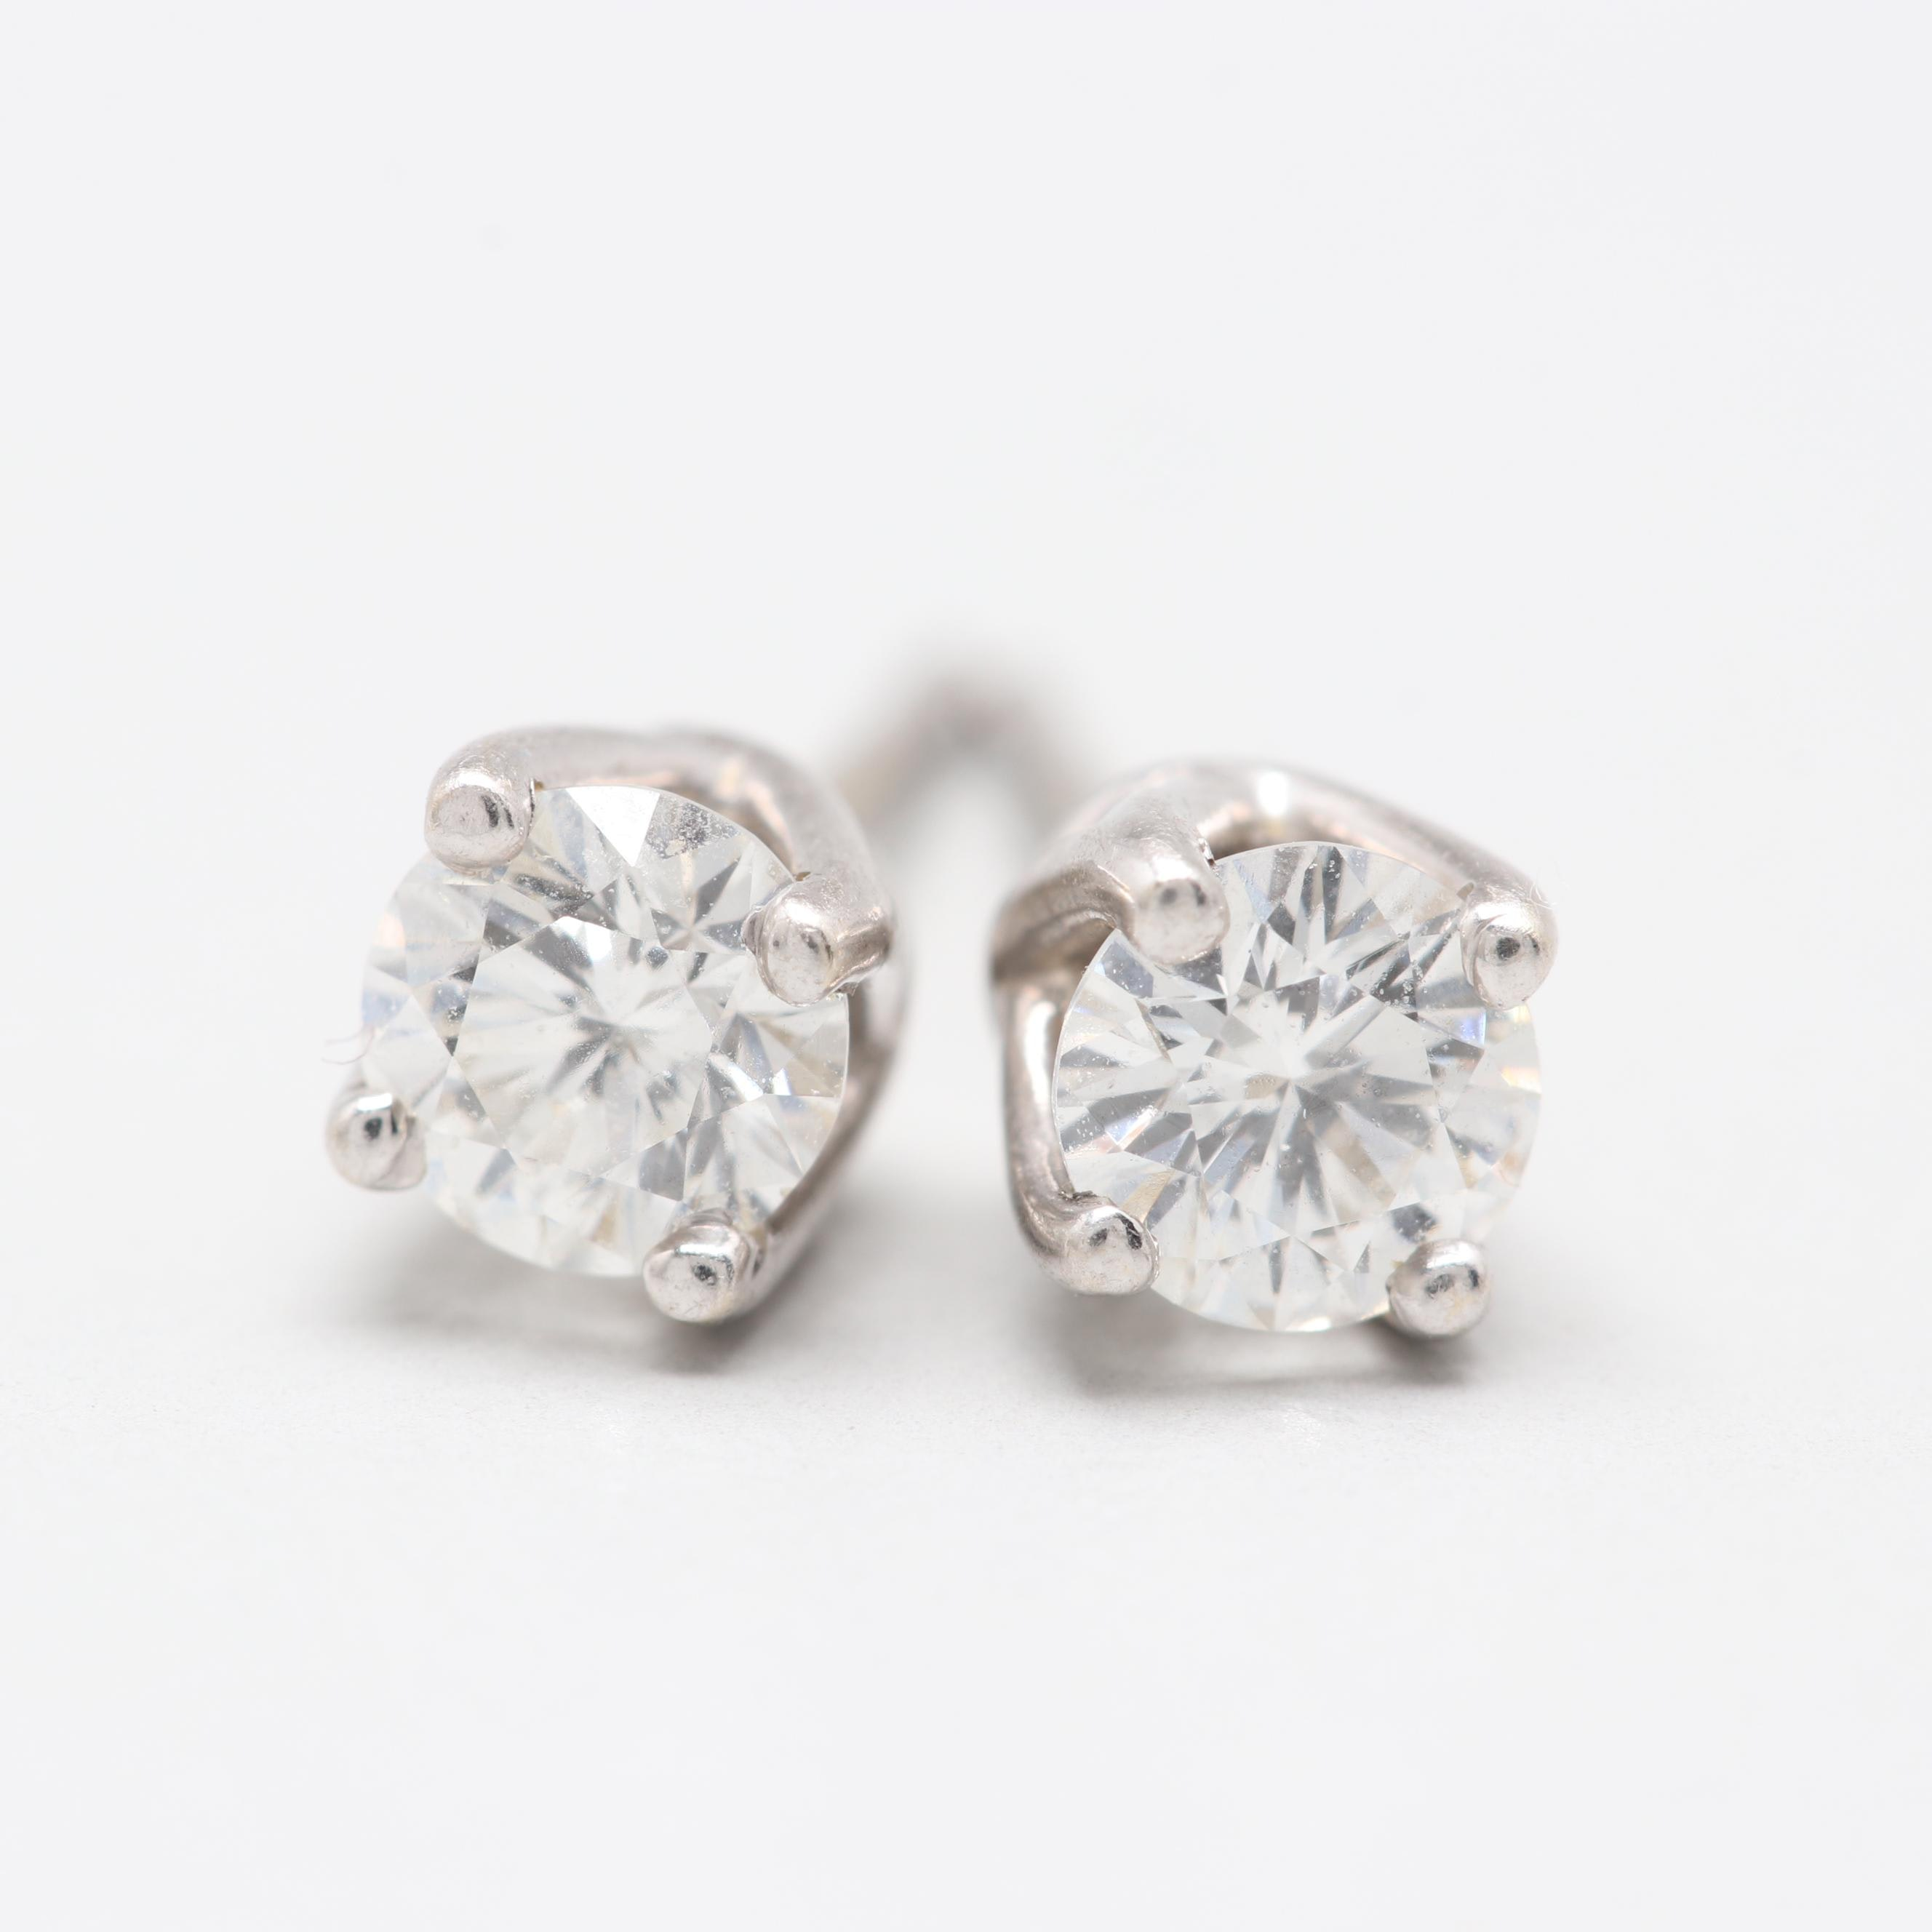 14K Yellow Gold Daimond Stud Earrings